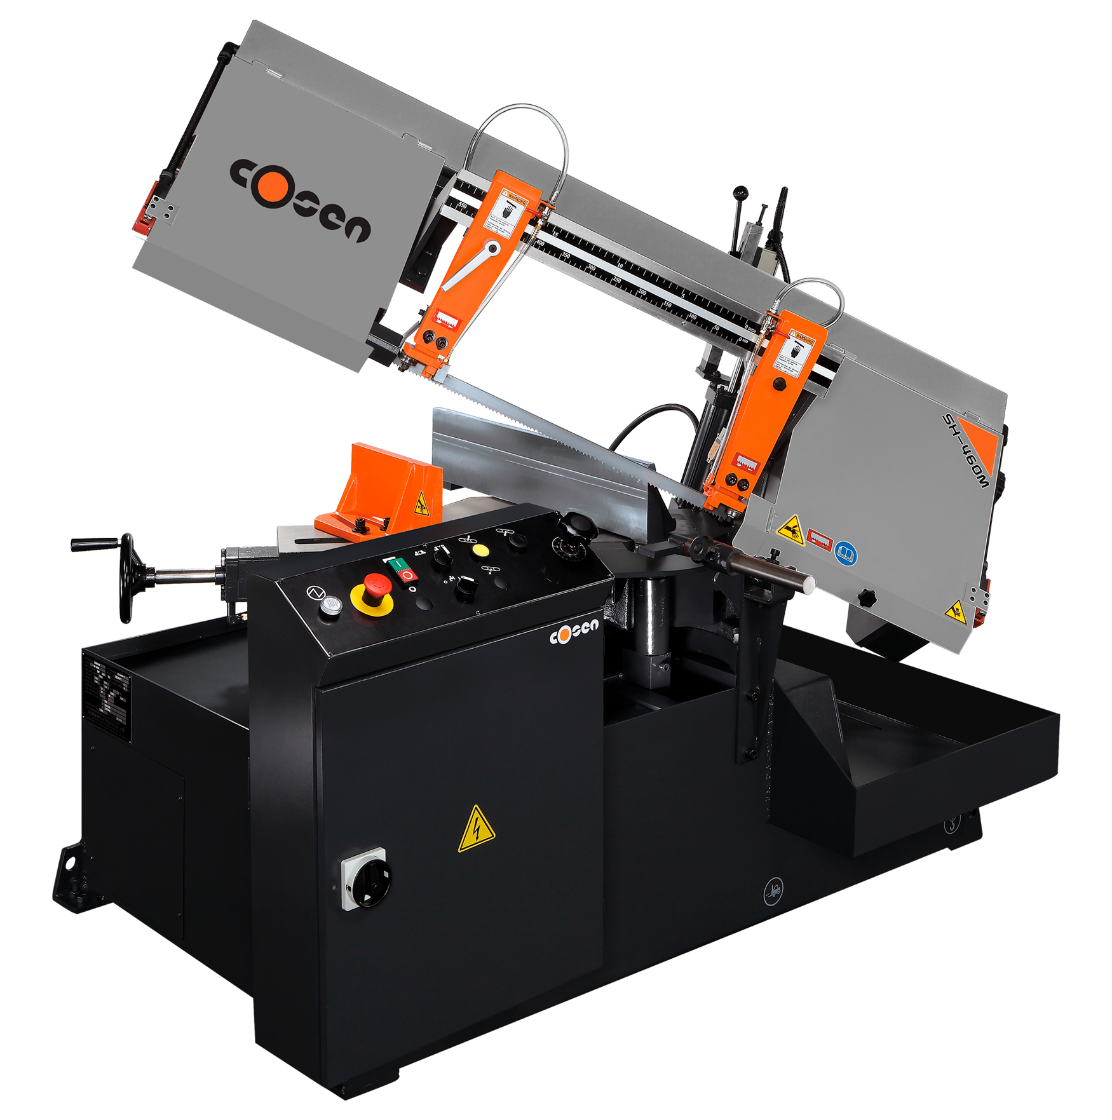 Semi-Automatic Horizontal Band Sawing Machines By Cosen Saws | SH-460M | MH-460M | Industry Saw & Machinery Sales